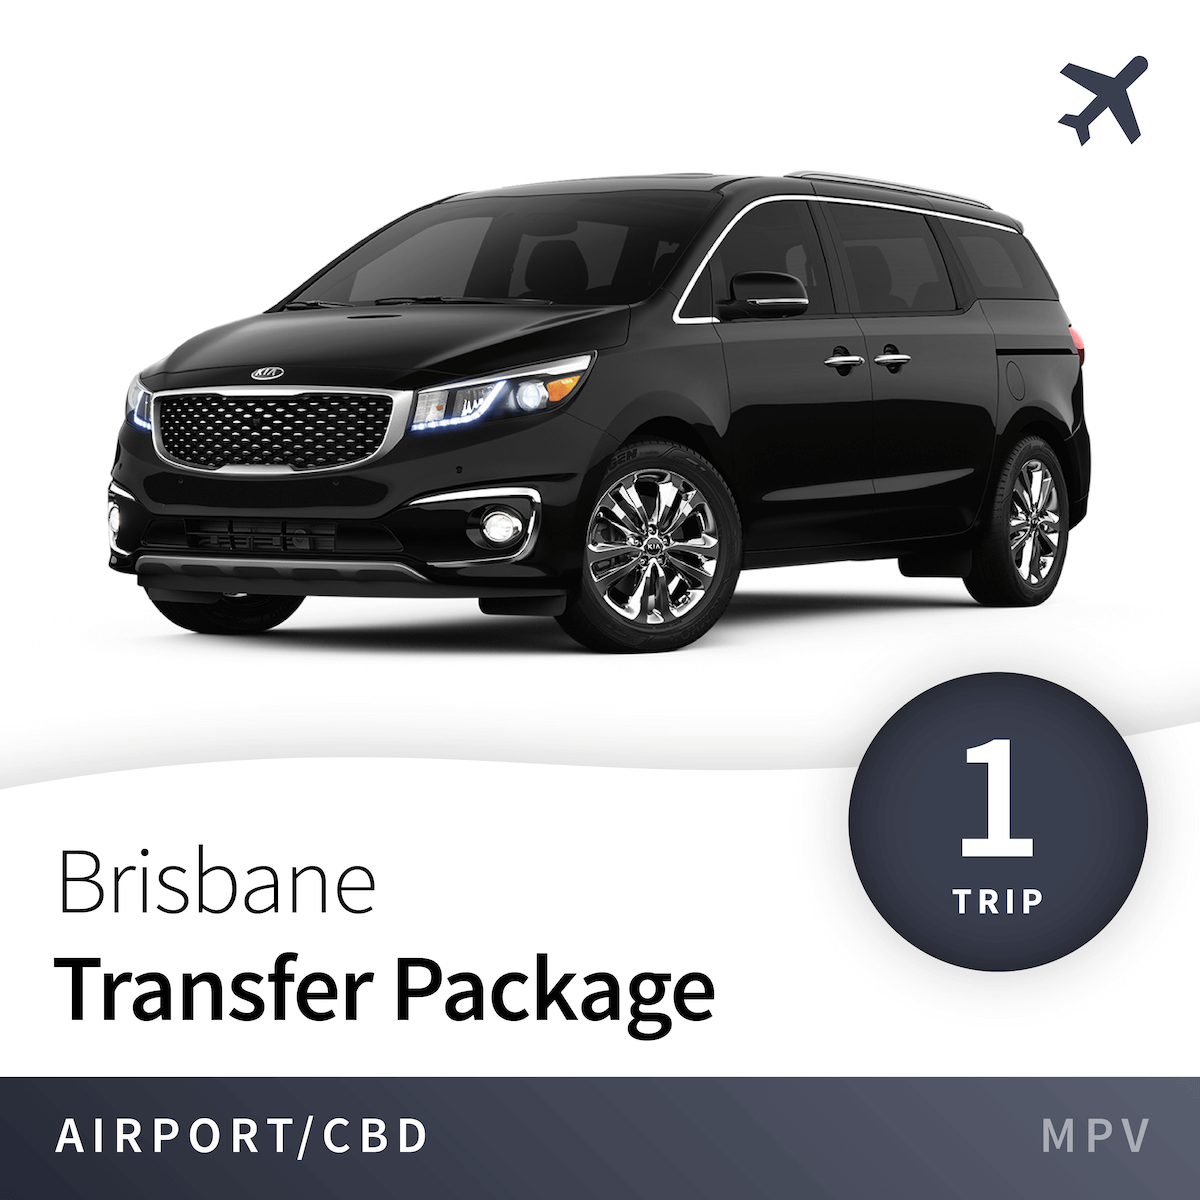 Brisbane Airport Transfer Package - MPV (1 Trip) 7